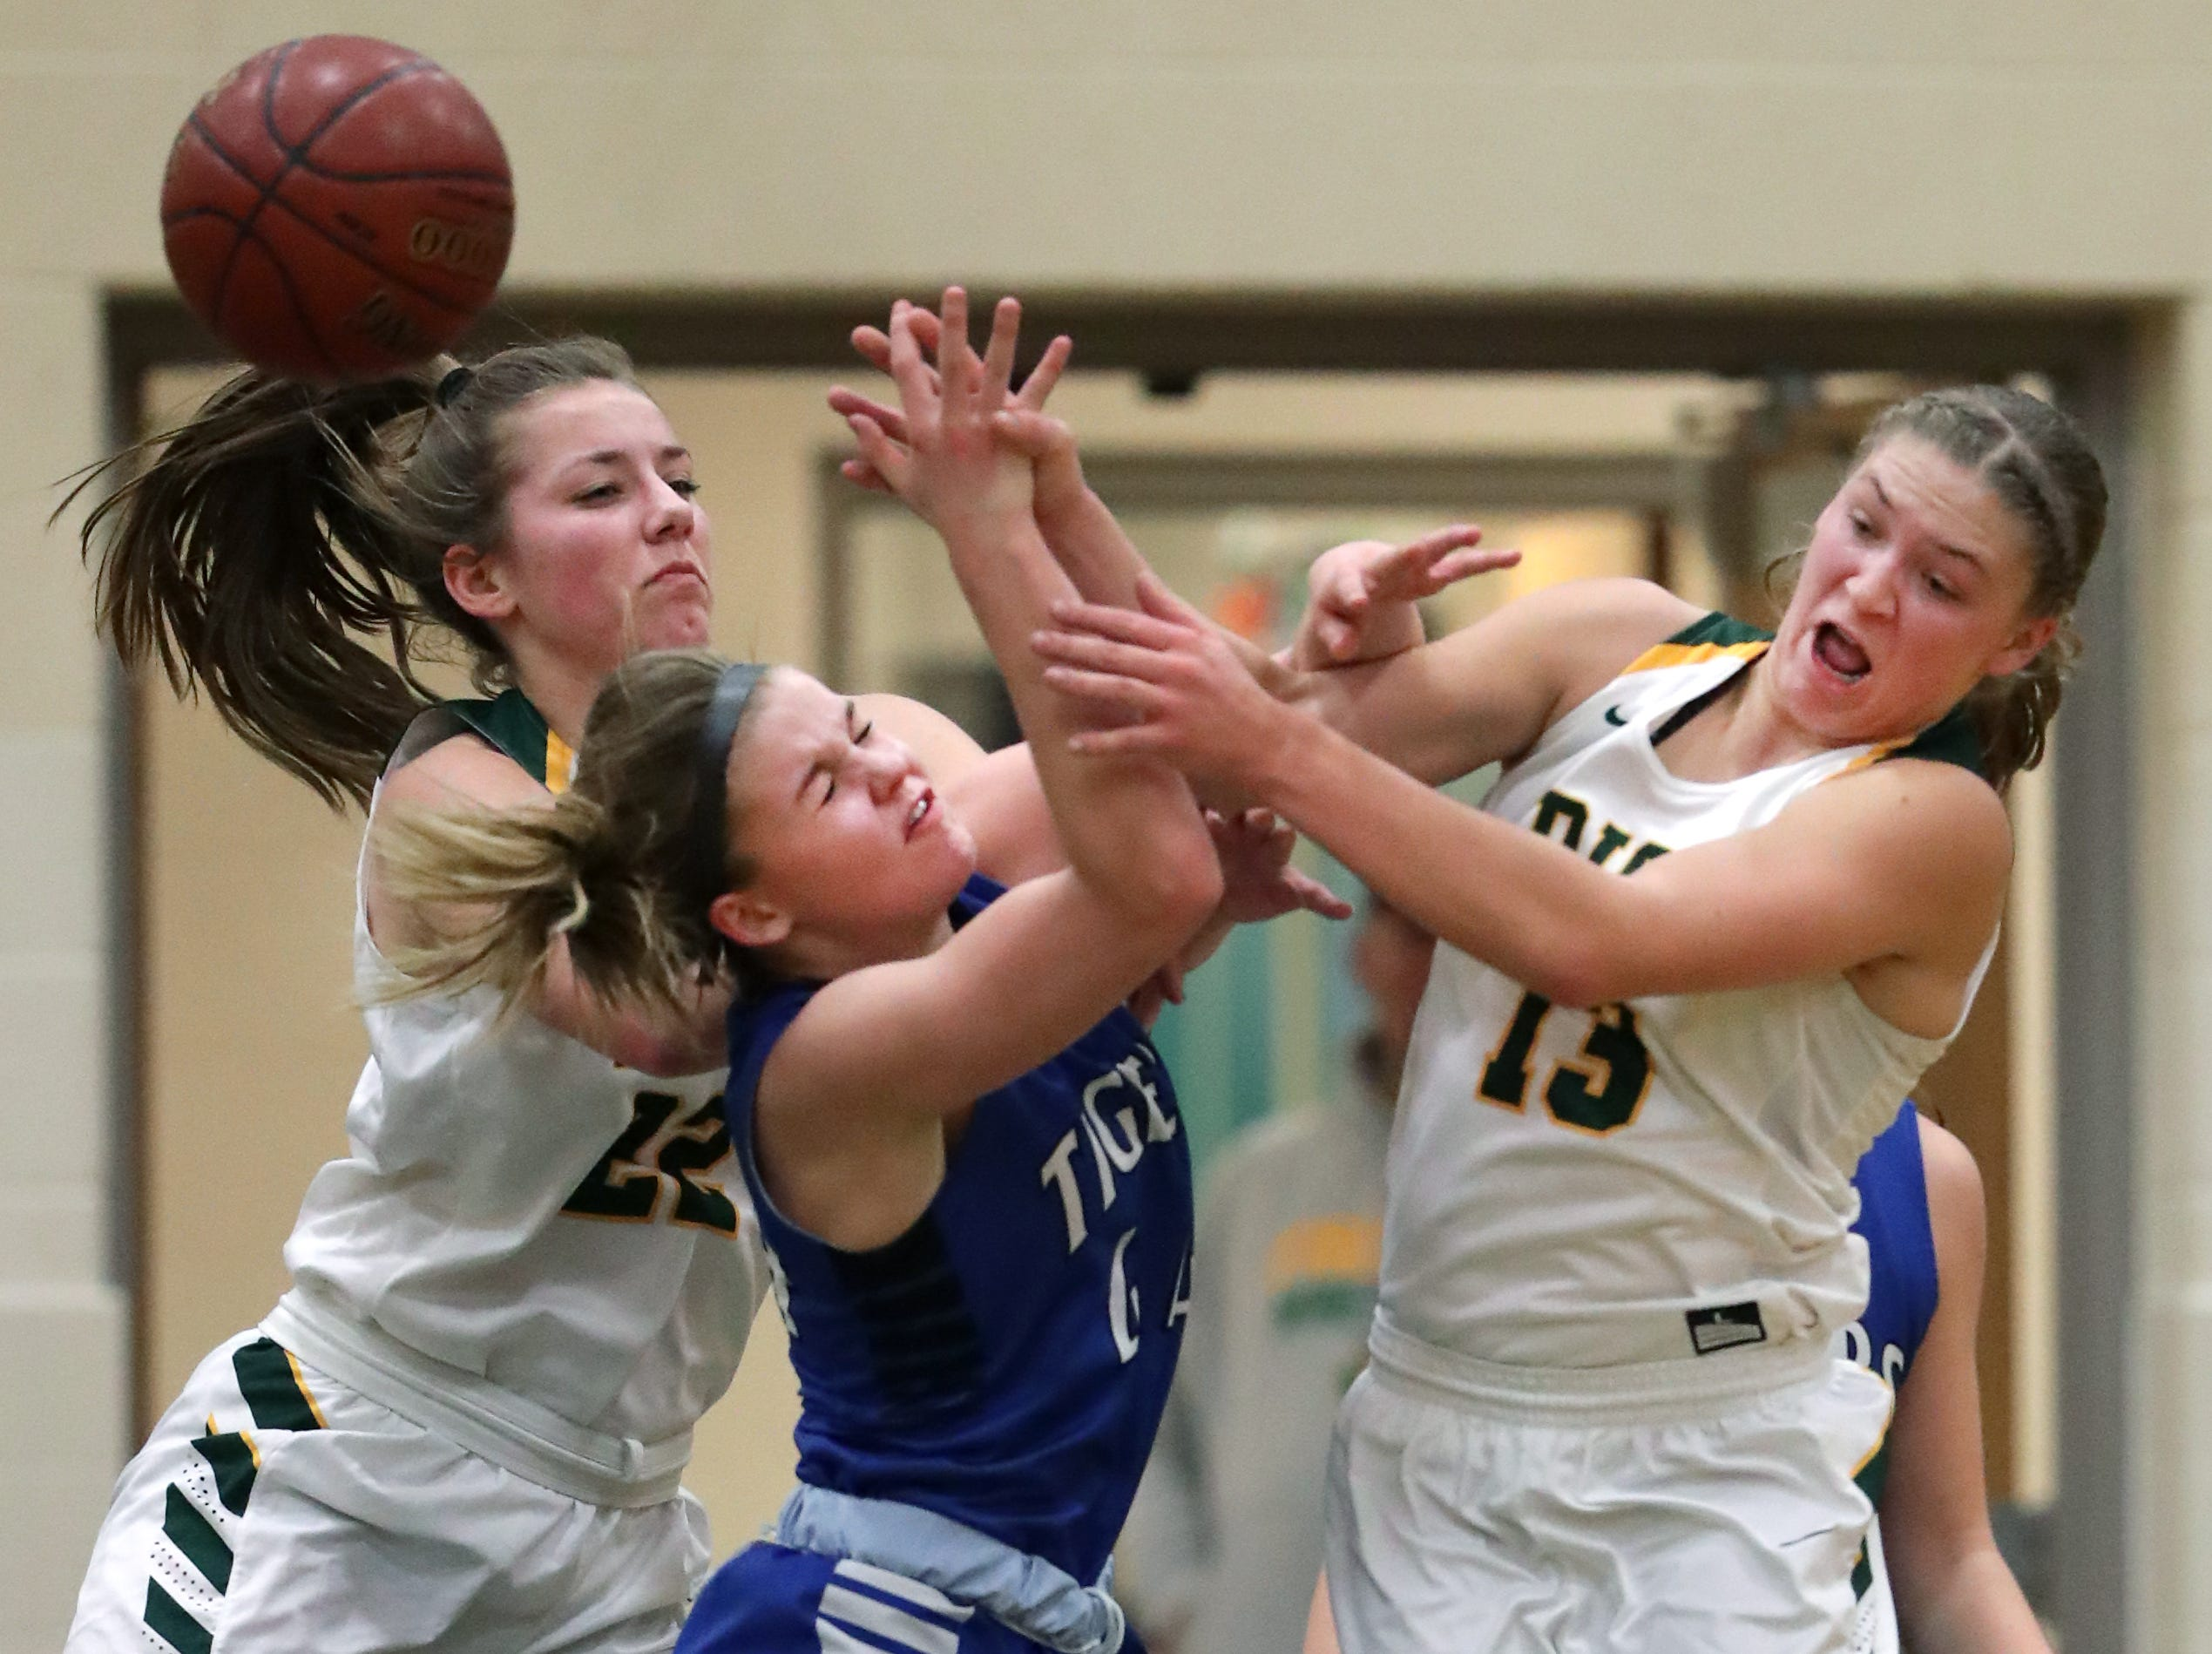 Freedom High School's #22 Taylor Haase and #13 Gabby Johnson against Wrightstown High School's #44 Ella Diny during their North Eastern Conference girls basketball game on Thursday, January 3, 2019, in Freedom, Wis. Freedom defeated Wrightstown 54 to 34.Wm. Glasheen/USA TODAY NETWORK-Wisconsin.